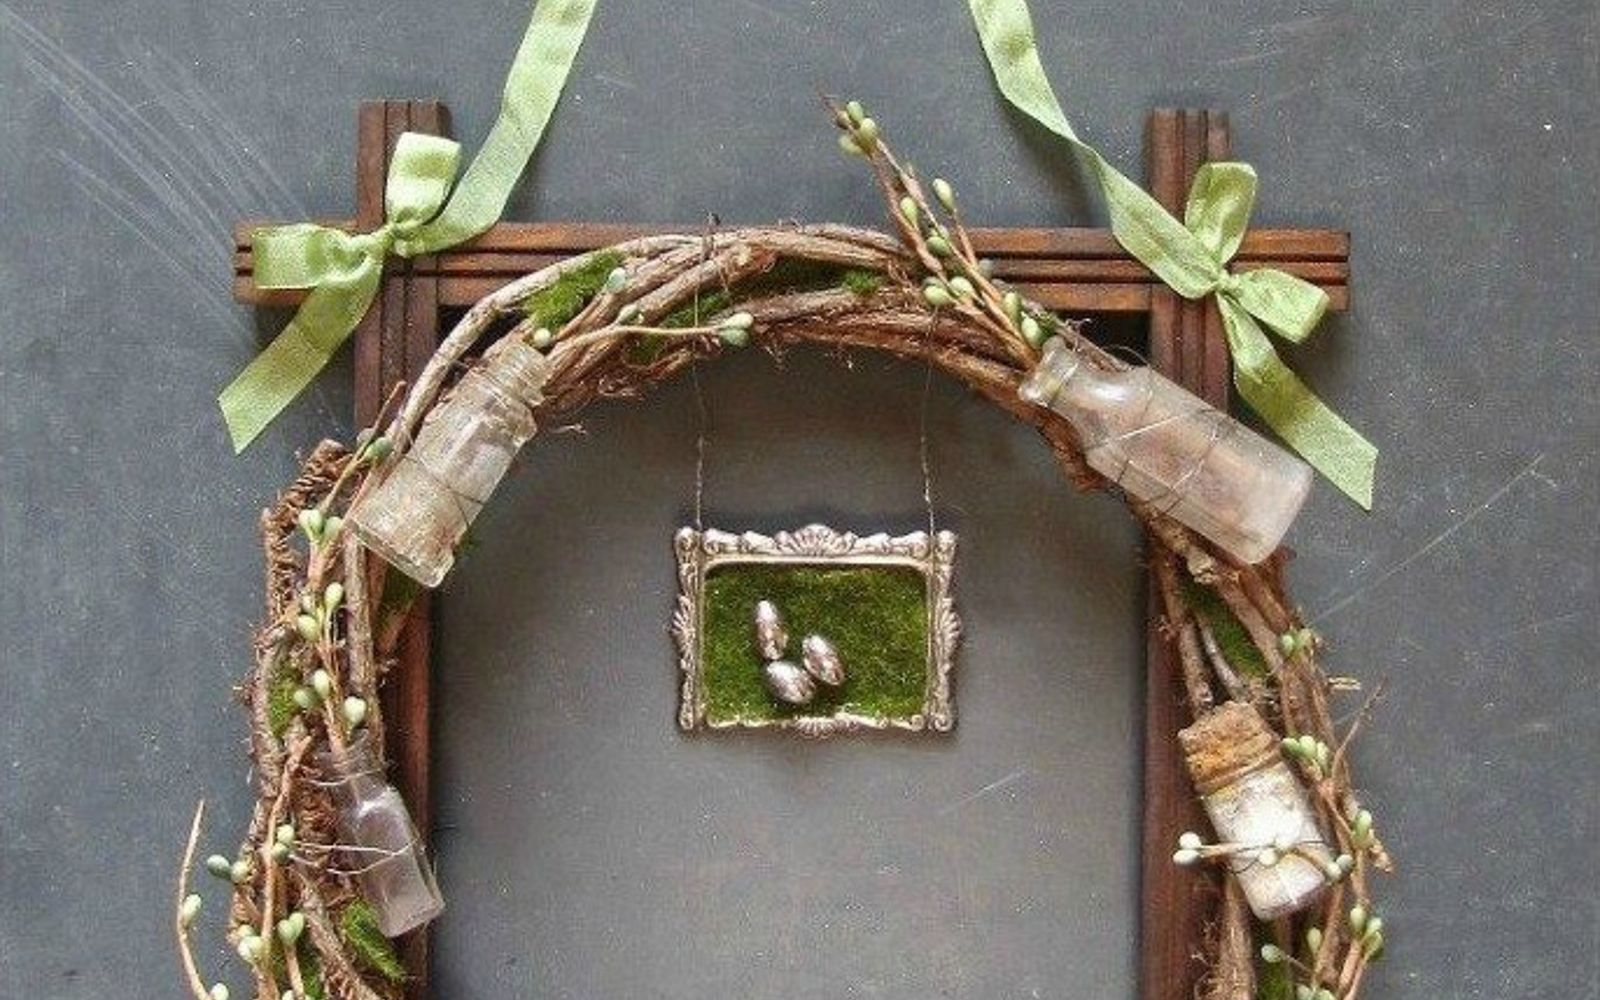 s 31 gorgeous spring wreaths that will make your neighbors smile, crafts, seasonal holiday decor, wreaths, Include some of your vintage collection